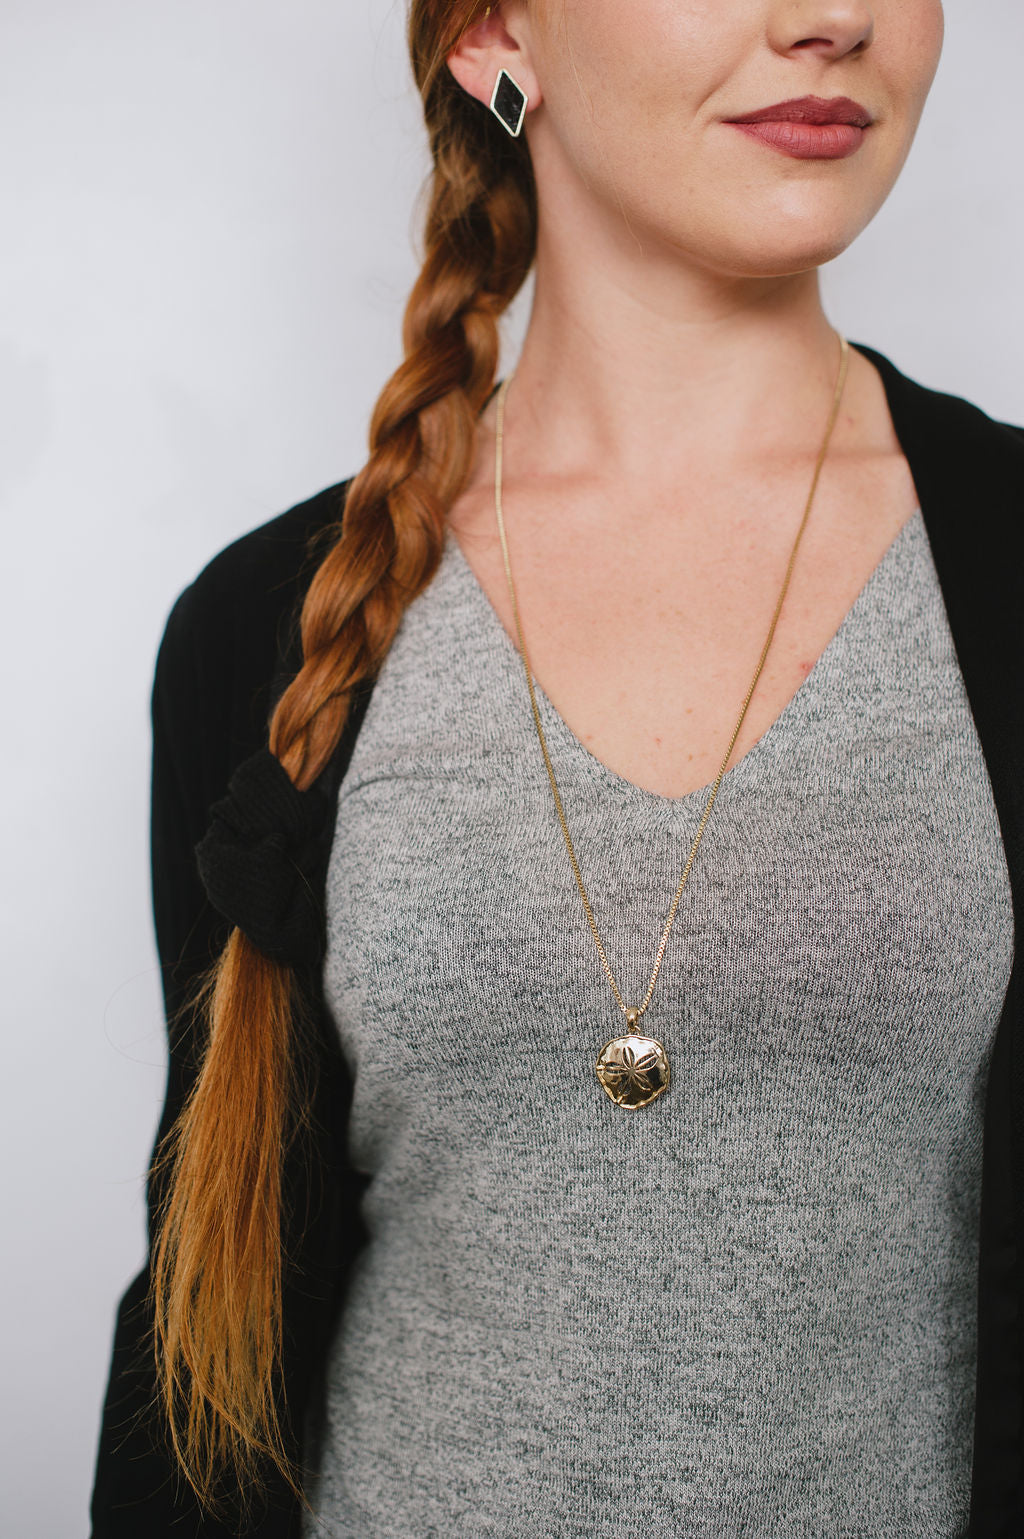 Beck & Boosh Sand Dollar Long Necklace Plated Gold Sand Dollar Pendant Hanging From Long Gold Plated Chain On Model